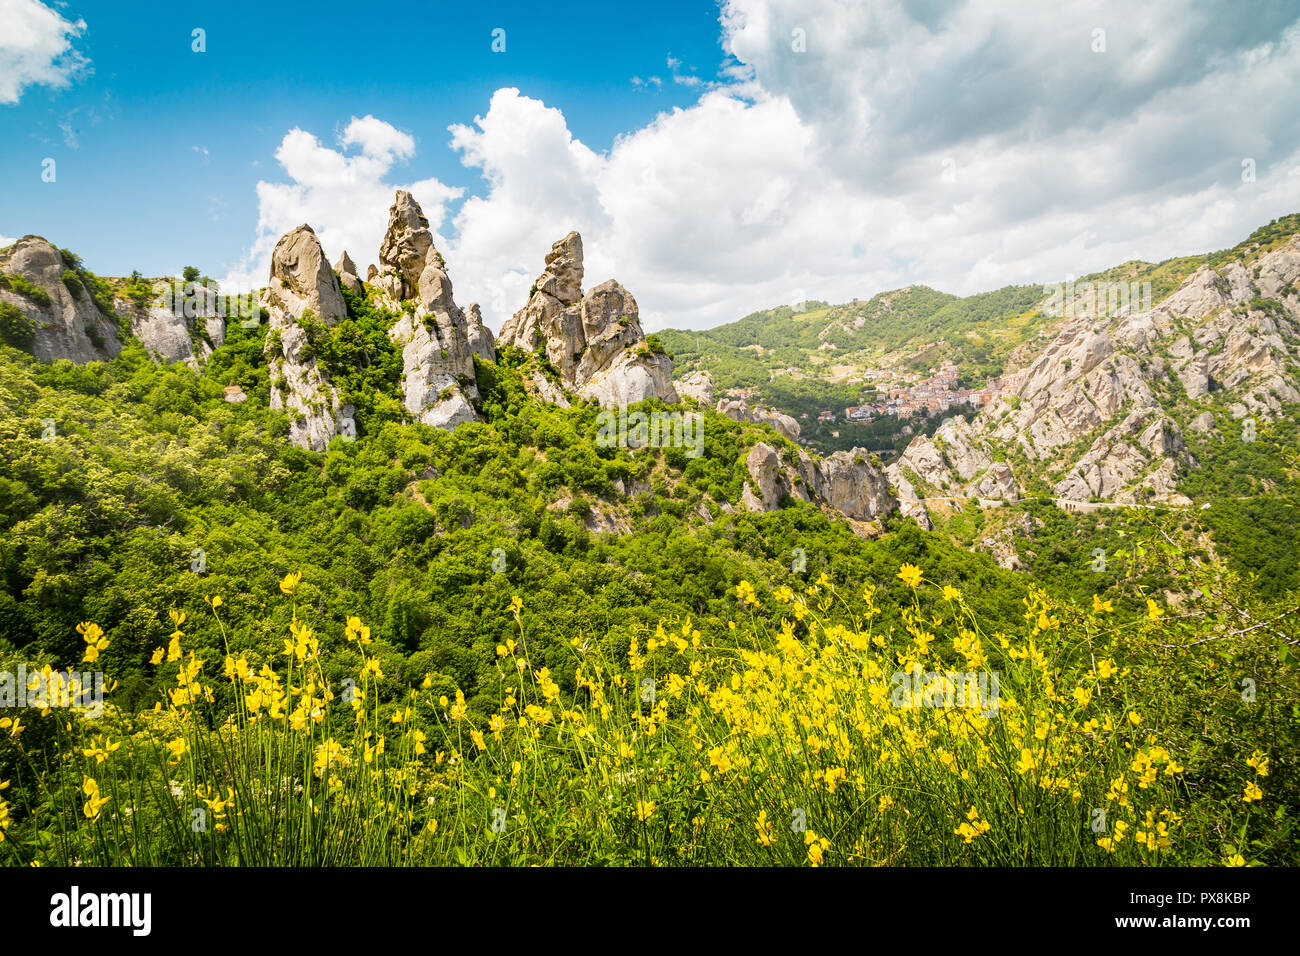 Panoramic view of famous Lucan Dolomites with beautiful mountain village of Castelmezzano in summer, Basilicata, Italy - Stock Image